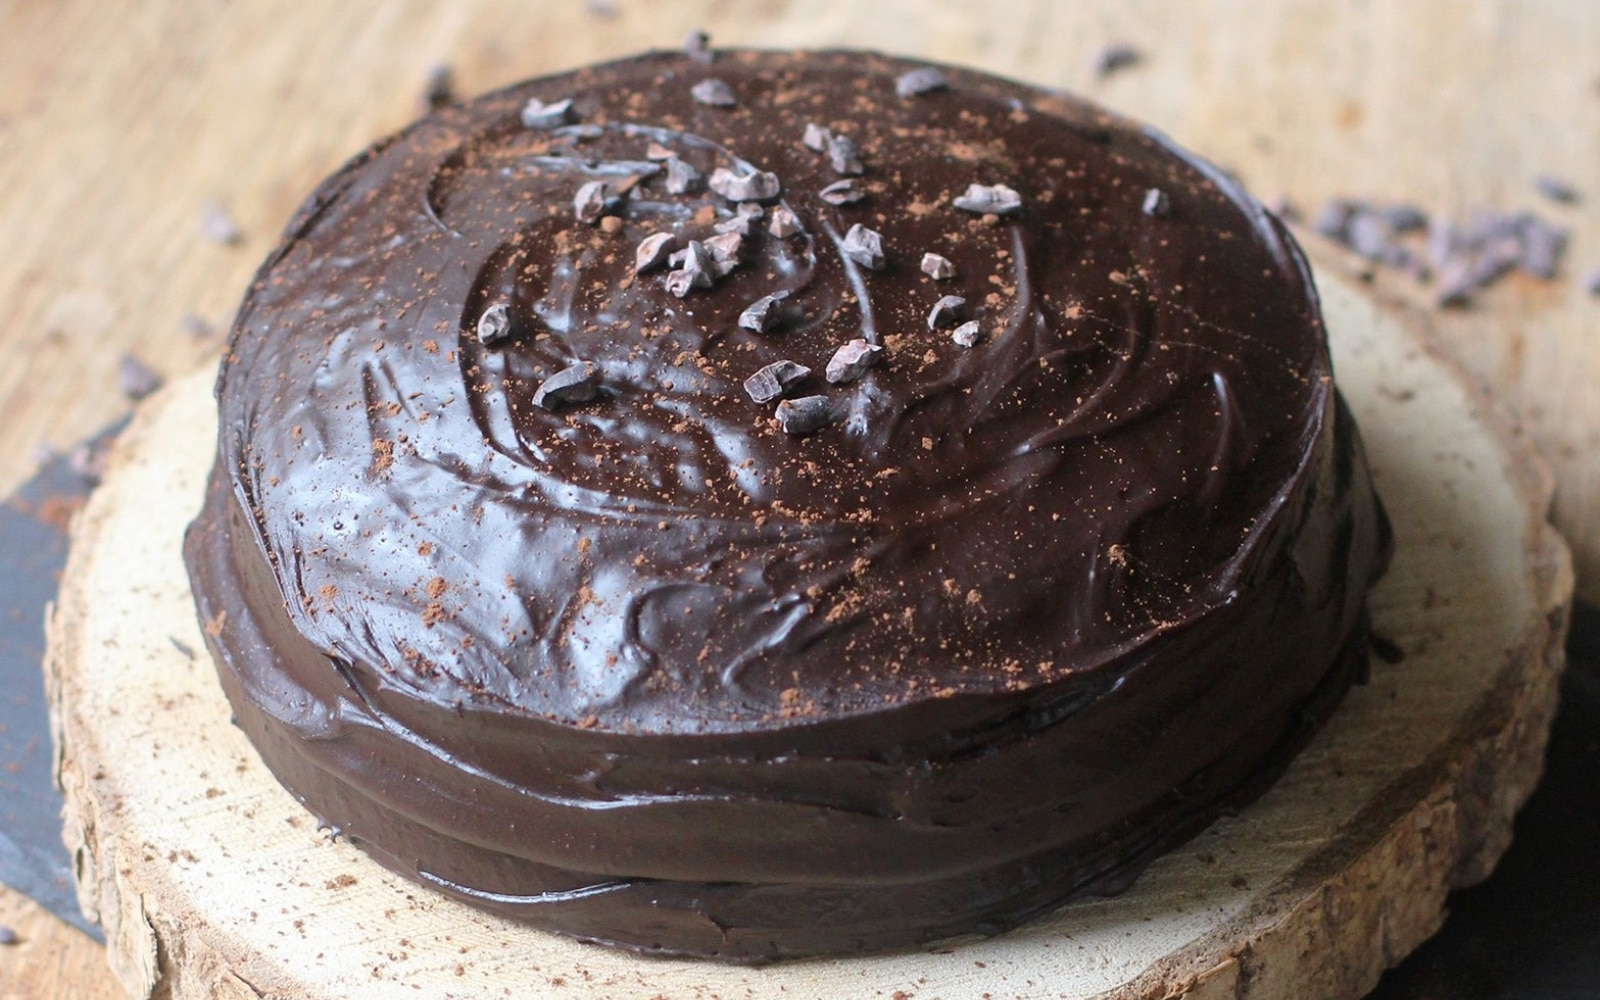 A close up of a piece of chocolate cake with chocolate frosting.